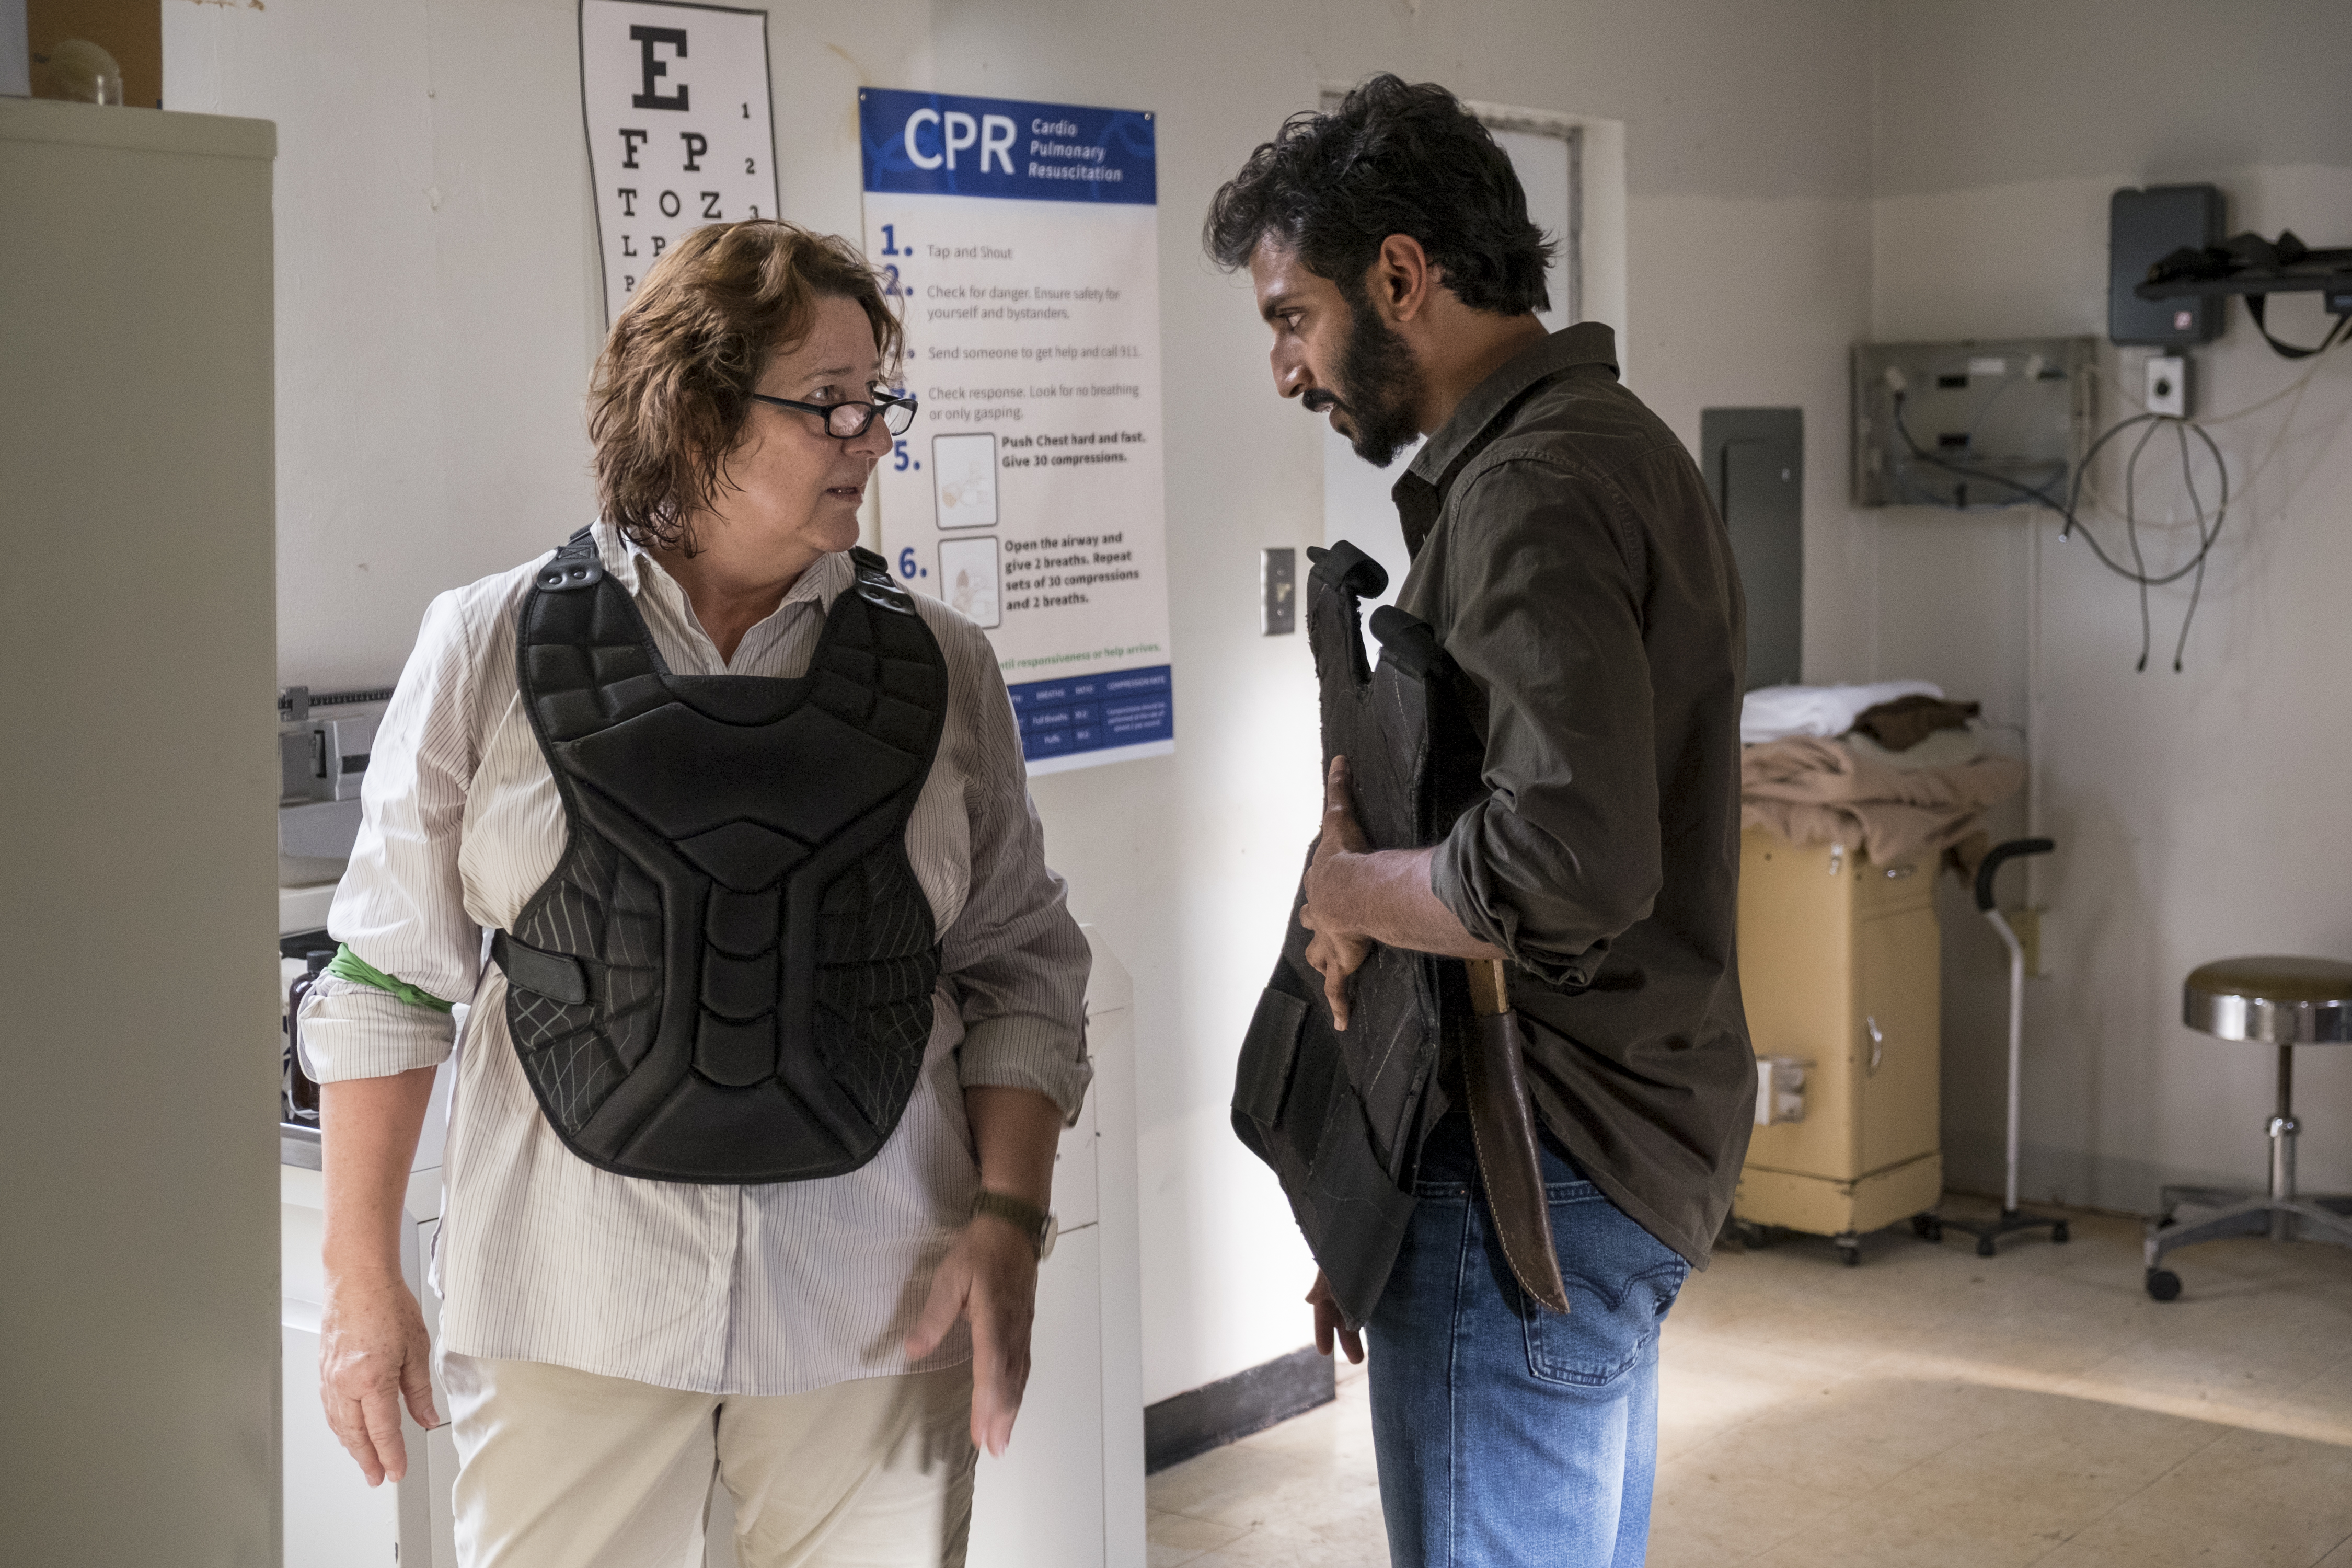 Dana (Peggy Sheffield) acceuille froidement Siddiq (Avi Nash) - The Walking Dead Saison 8 Épisode 13 - Crédit photo: Gene Page/AMC